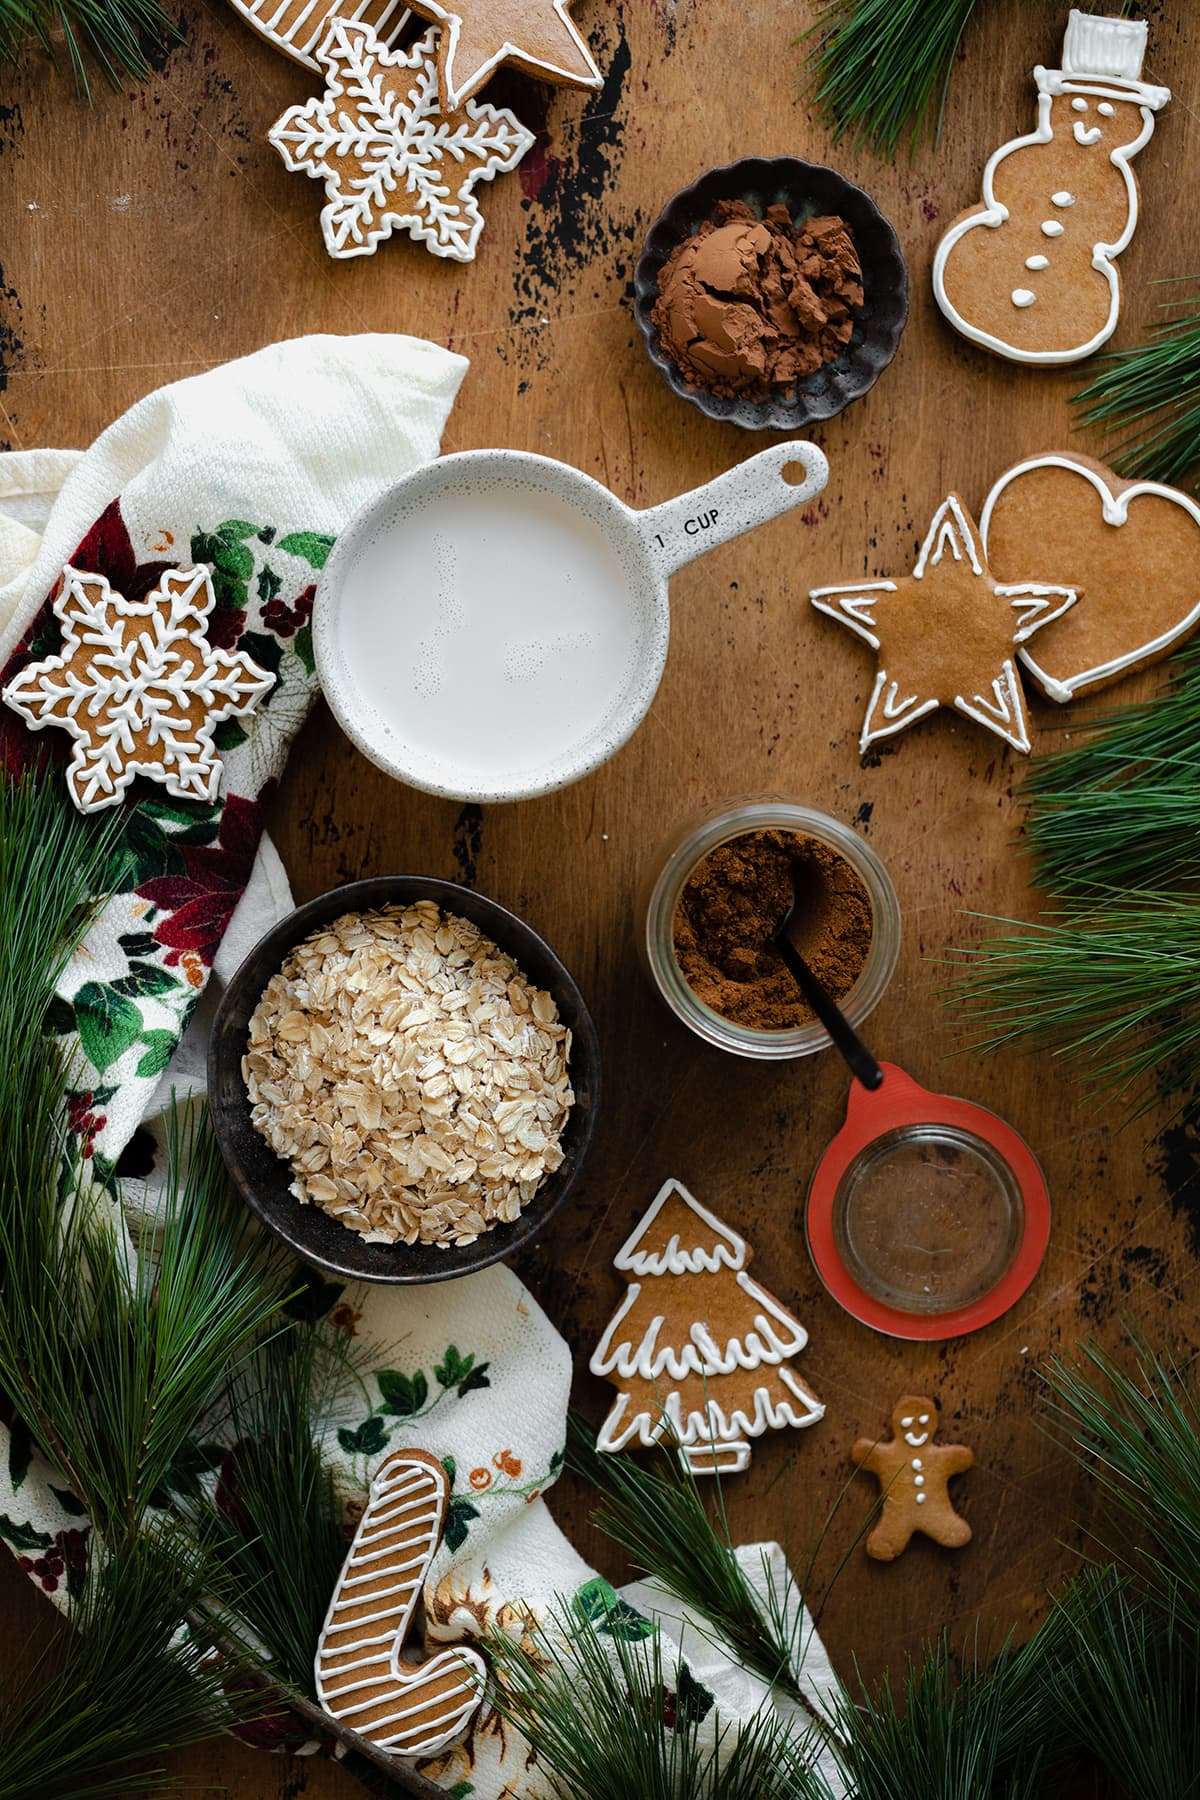 Ingredients for gingerbread oatmeal laid out on a light wooden background.